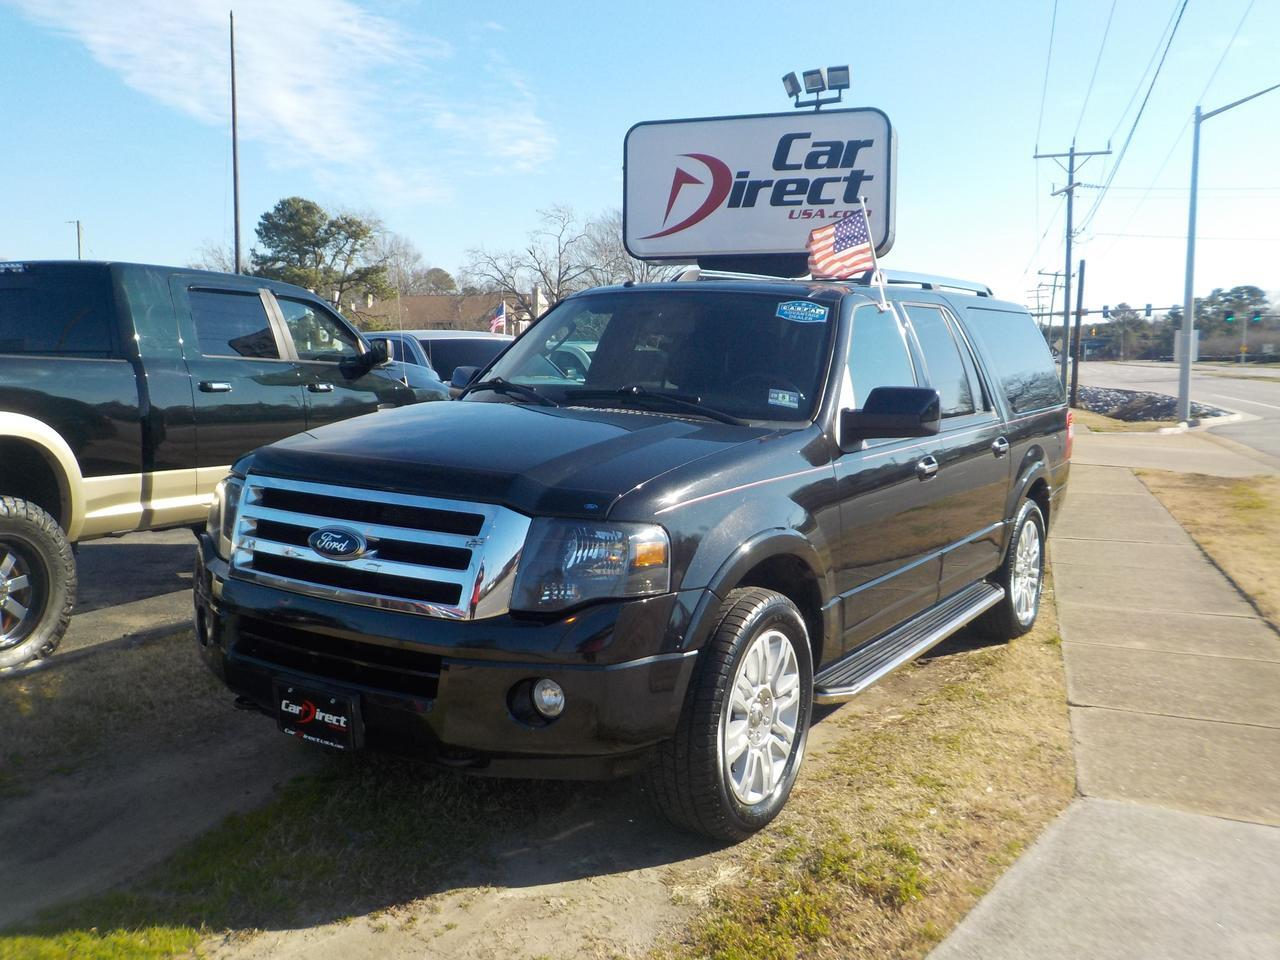 2012 FORD EXPEDITION EL LIMITED 4X4, LEATHER HEATED & COOLED SEATS, POWER LIFTGATE, BACKUP CAMERA, SUNROOF, NAVIGATION! Virginia Beach VA